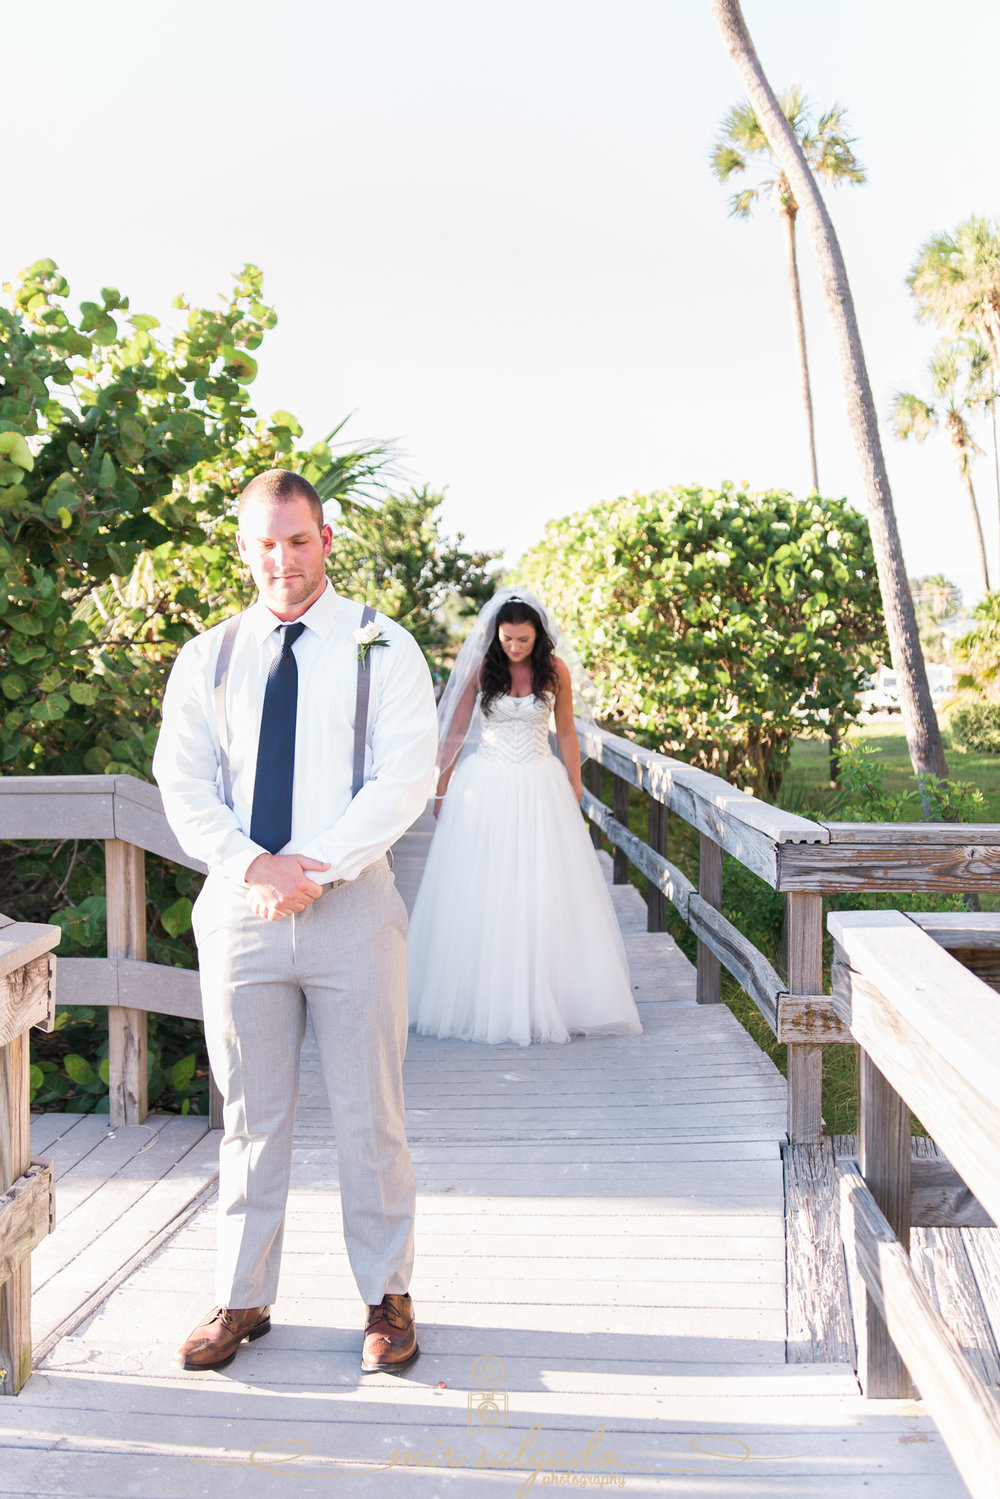 Tide-the-knot-beach-weddings, first-look-photo, beach-wedding-photo